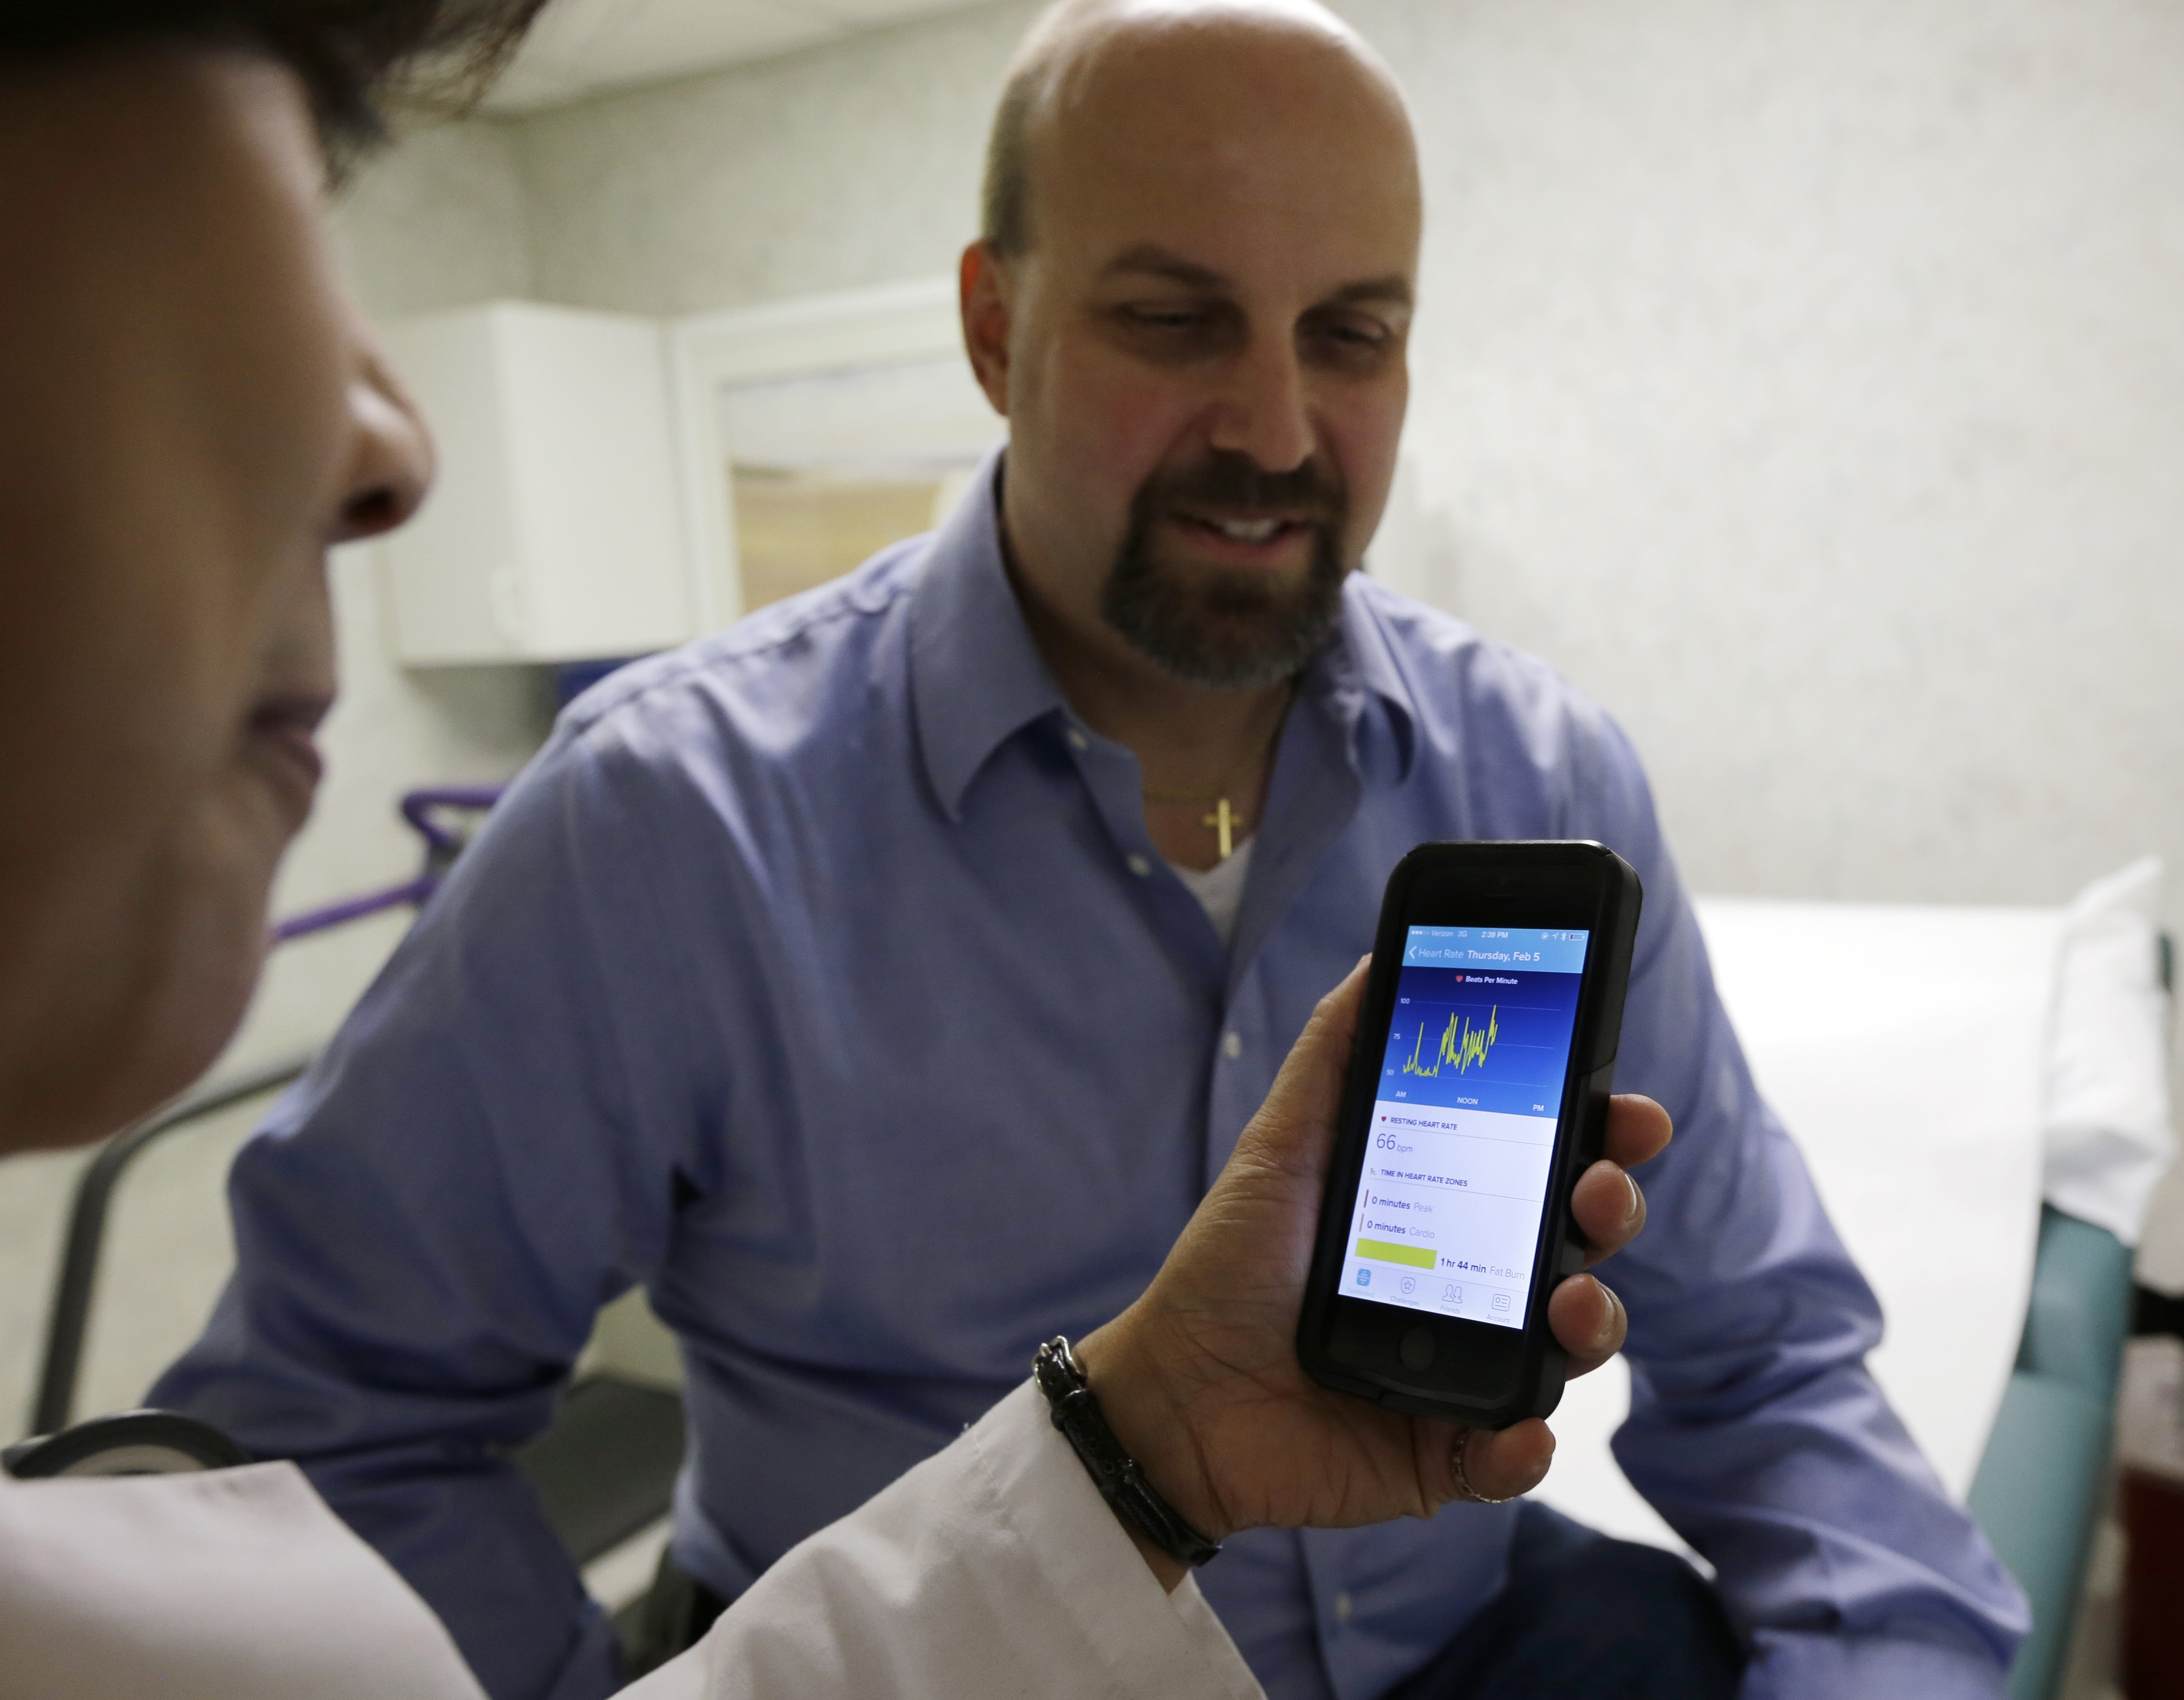 Report: Health apps on the rise